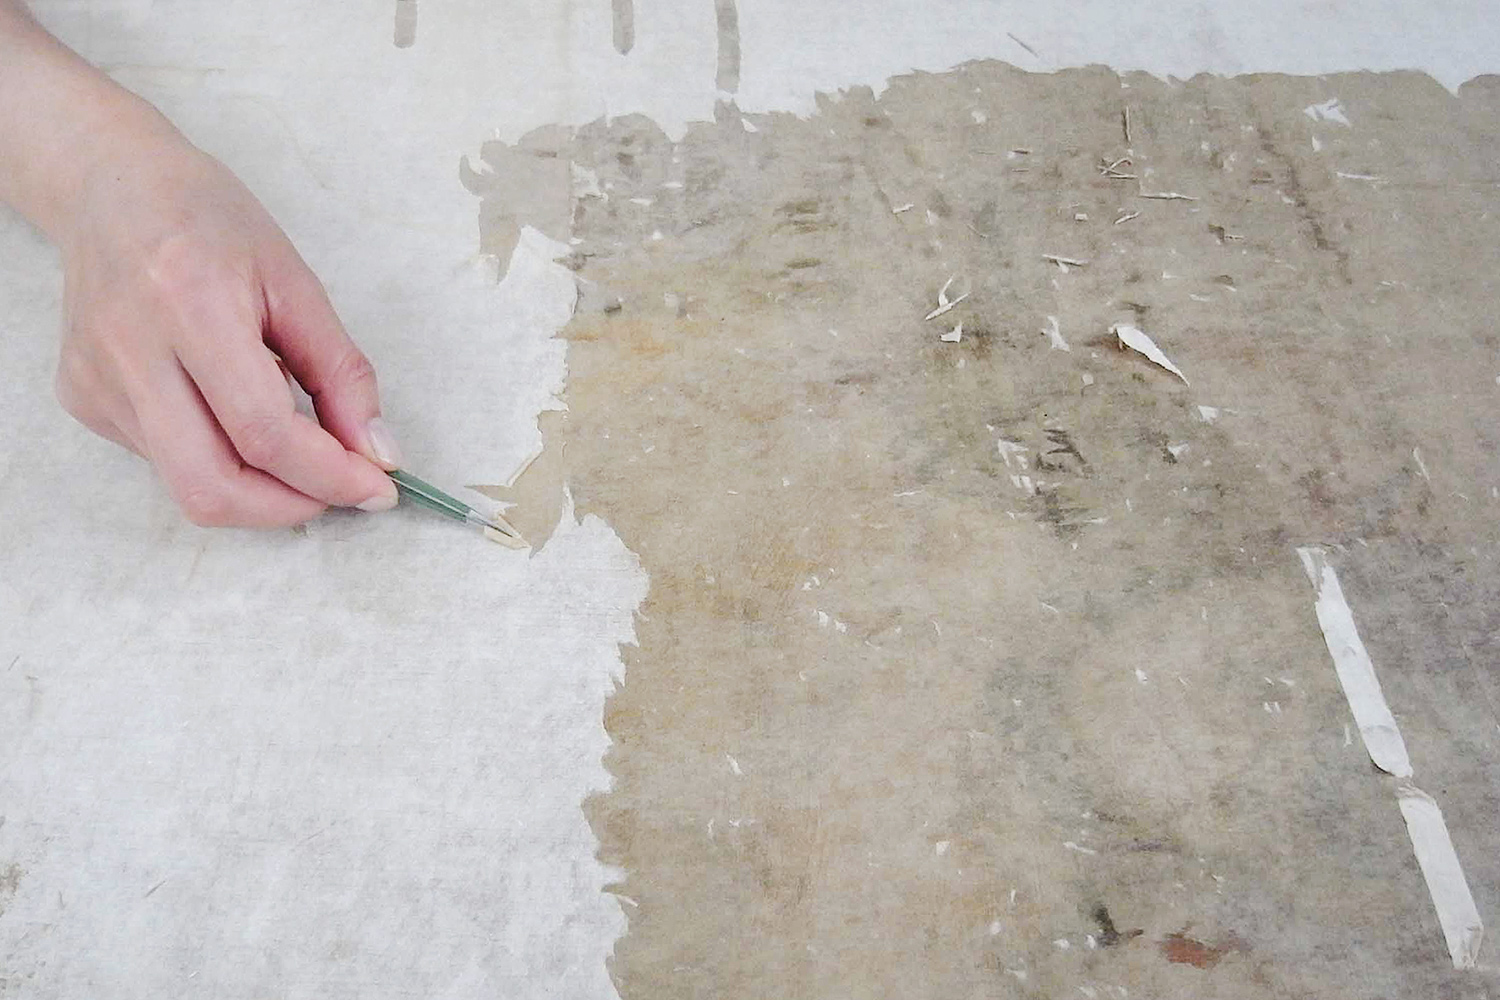 A conservator at the Handa Kyuseido studio in Japan carefully removes layers of backing paper from one of the paintings.